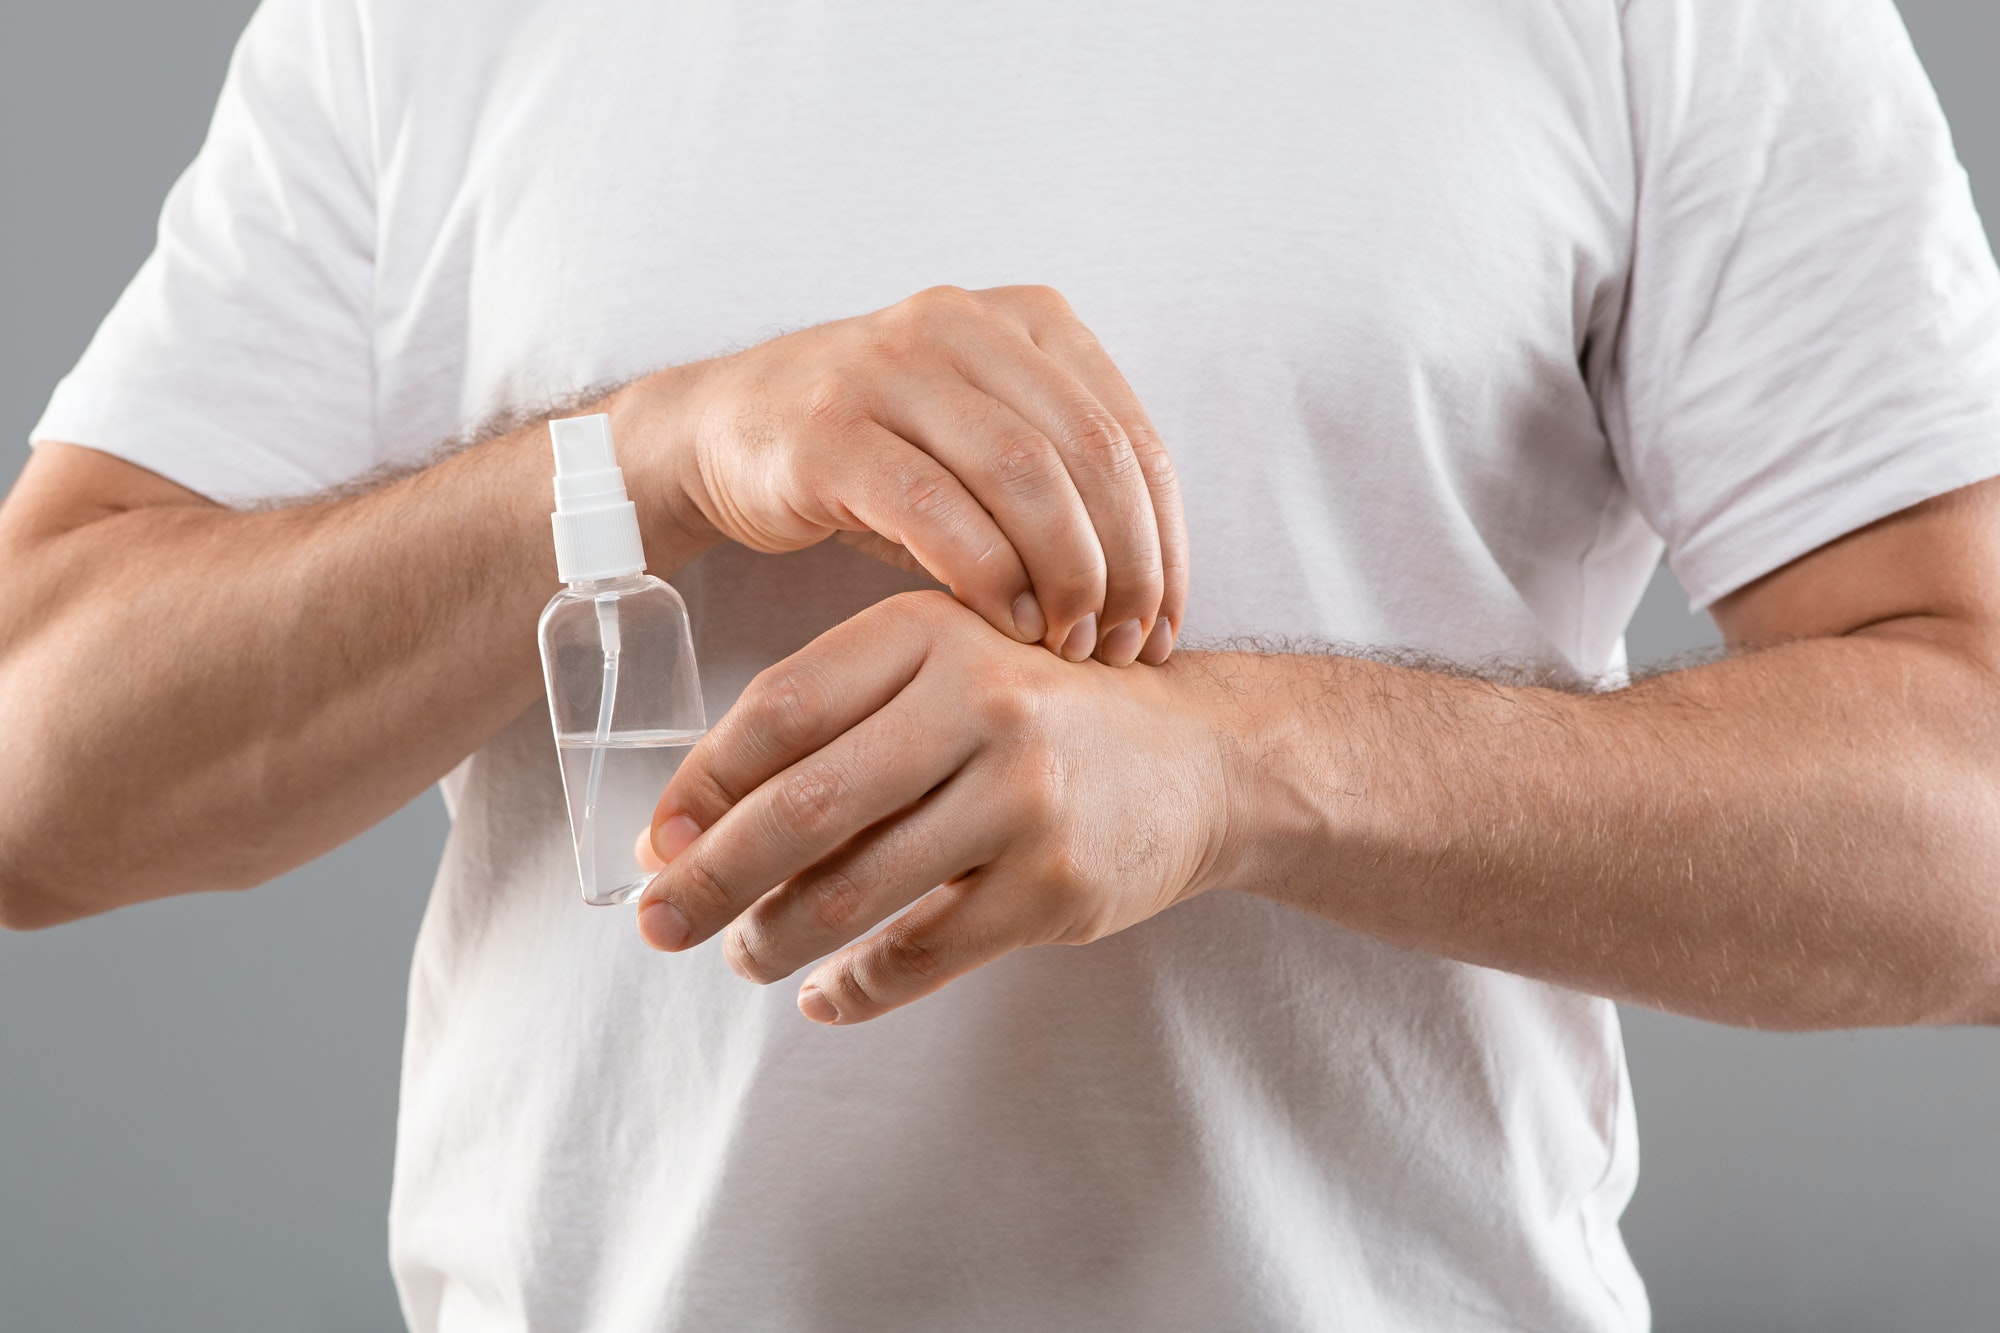 How to Treat Burn Injury at Home?